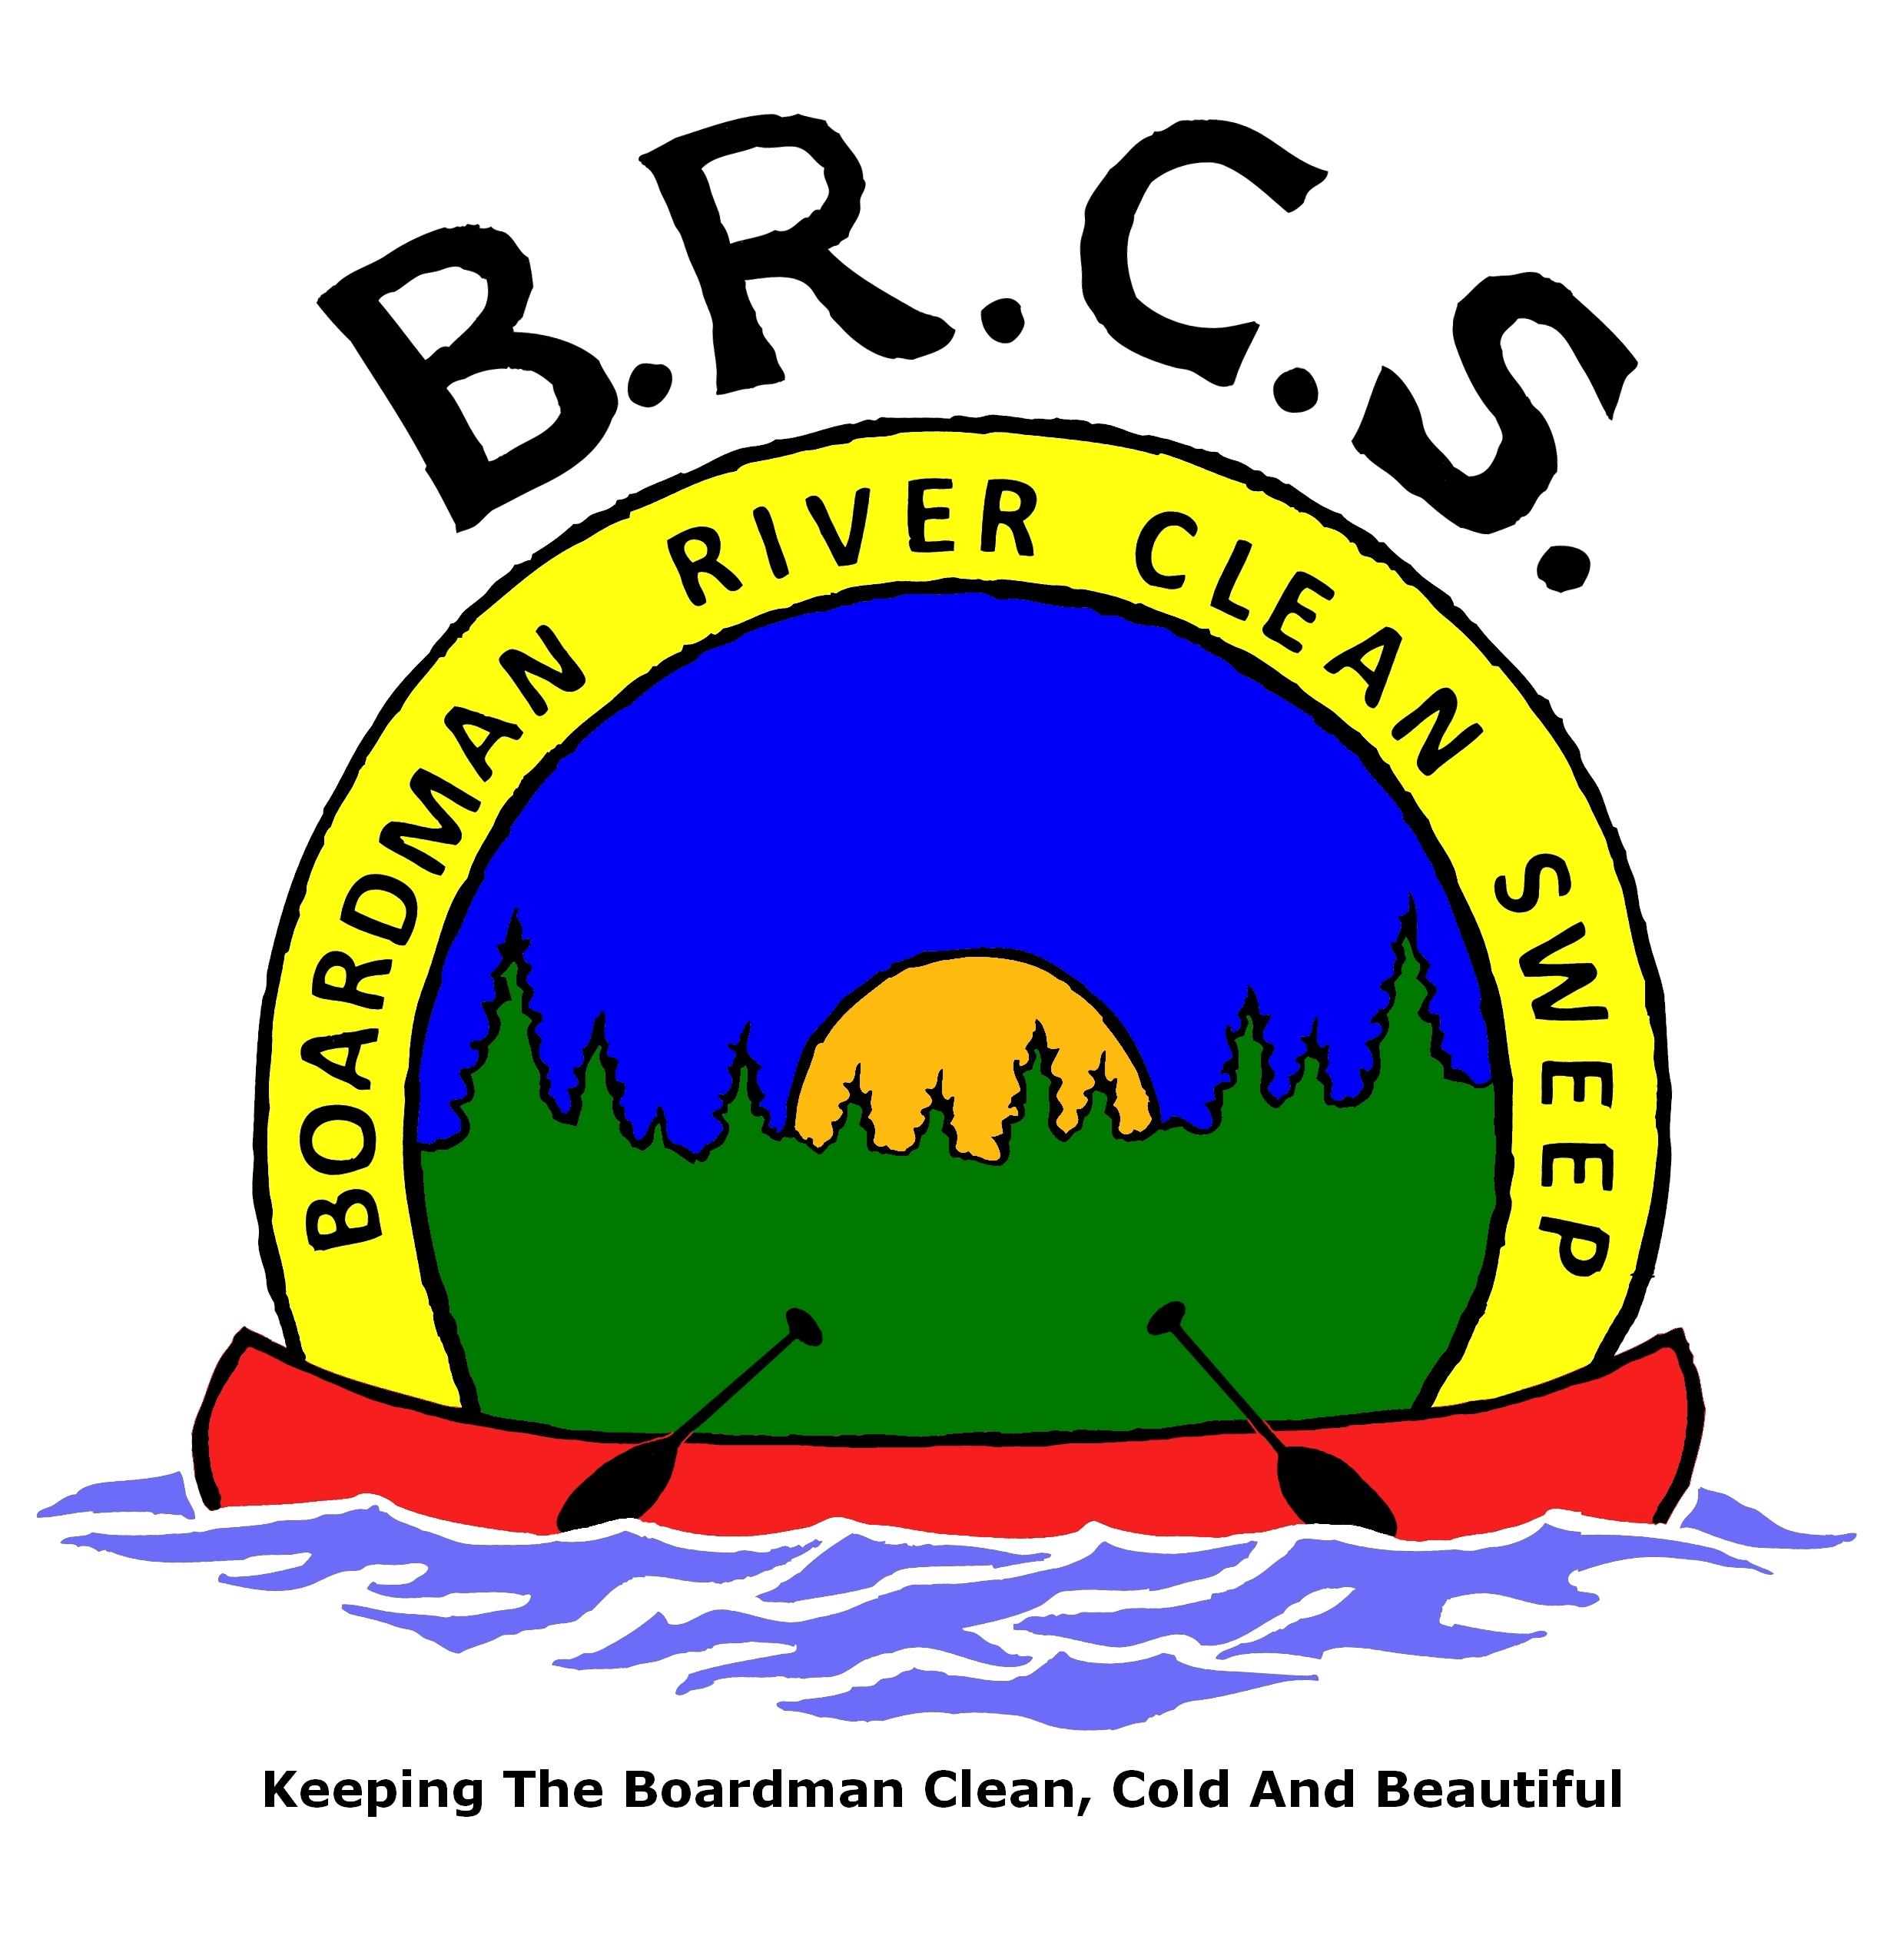 BRCS - Keeping the Boardman Clean, Cold and Beautiful